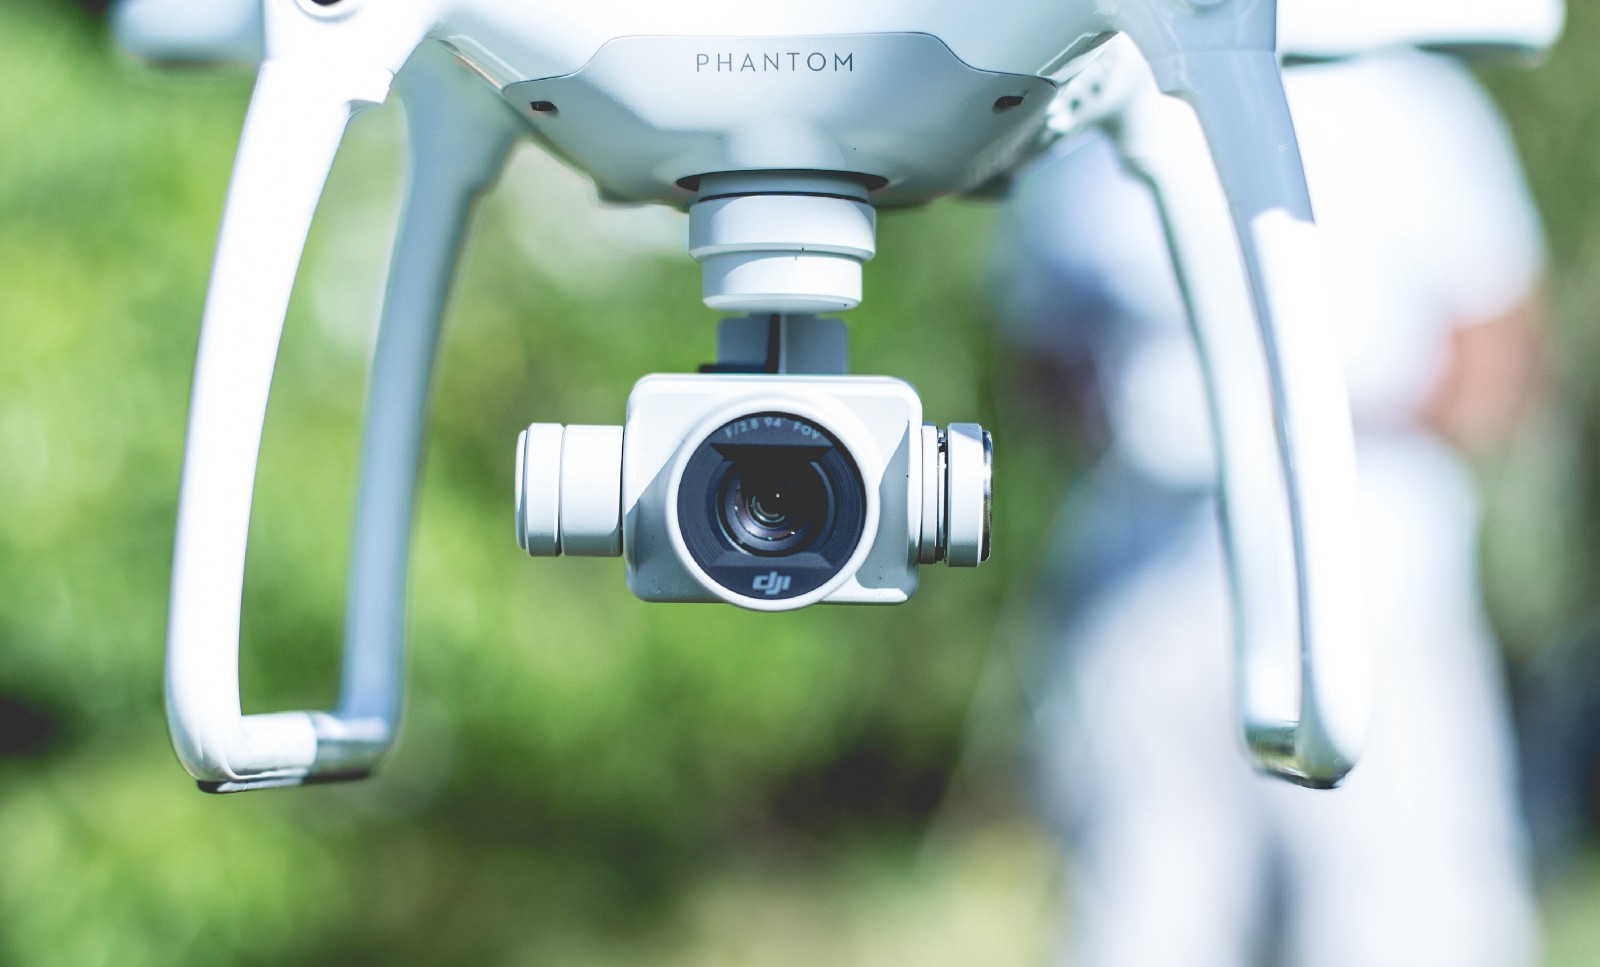 What Makes A Good Camera For Drone Surveys And Inspections